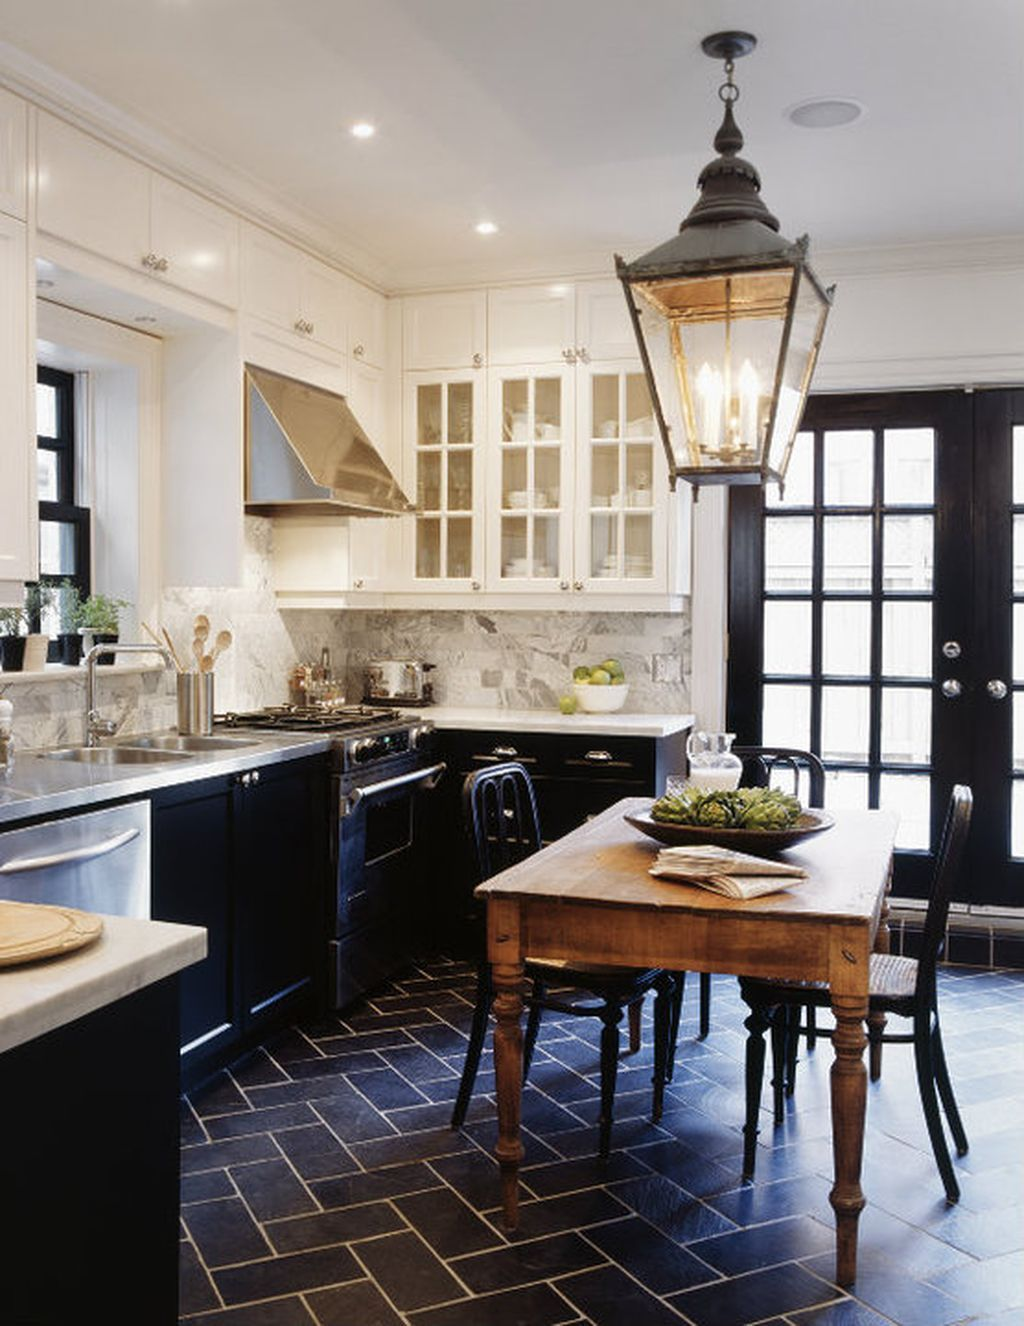 Cool French Country Kitchen Ideas On A Budget 38